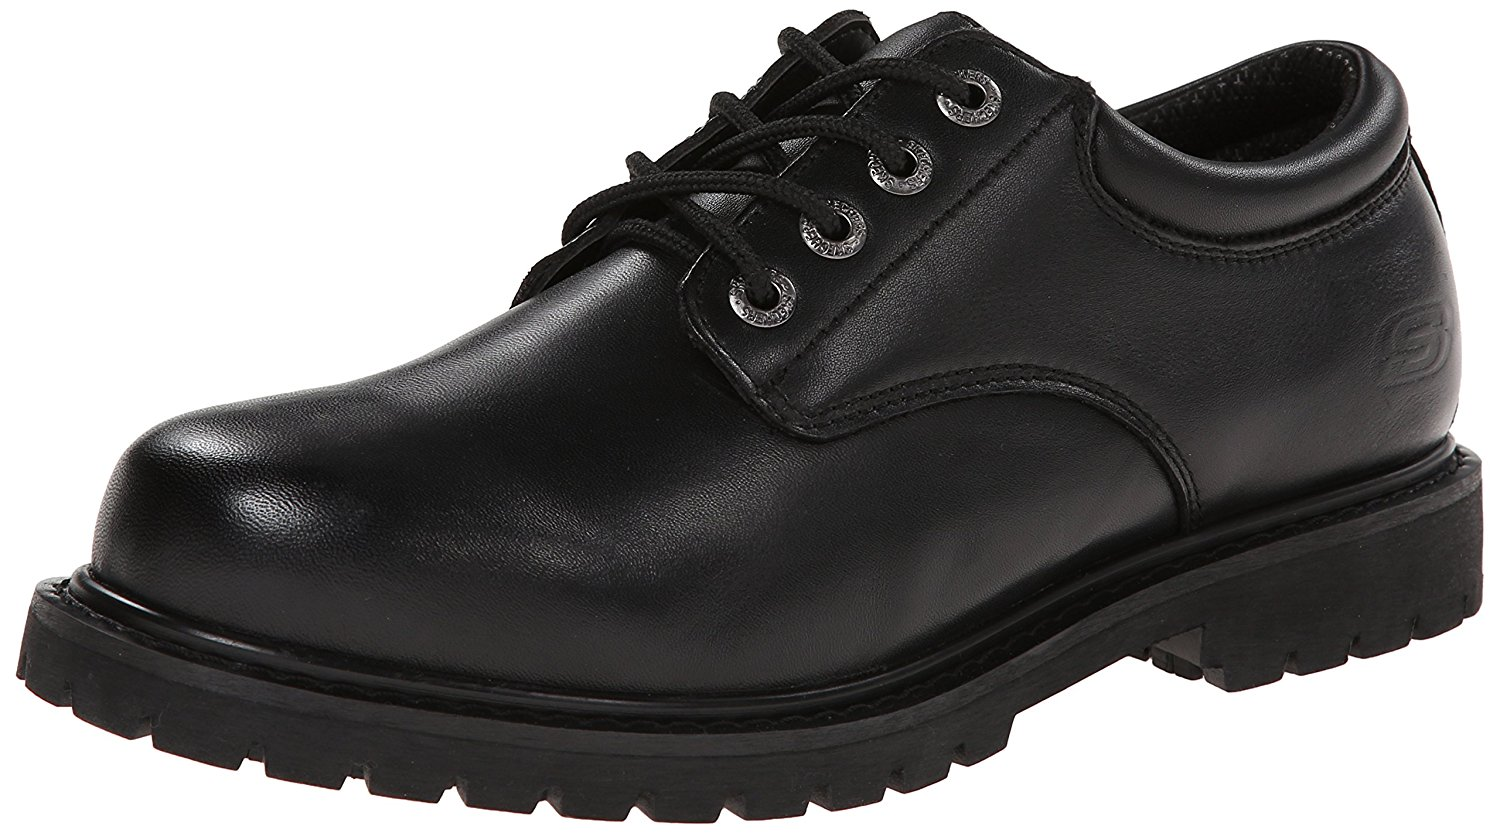 Sketcher All Day Standing Shoes Mens